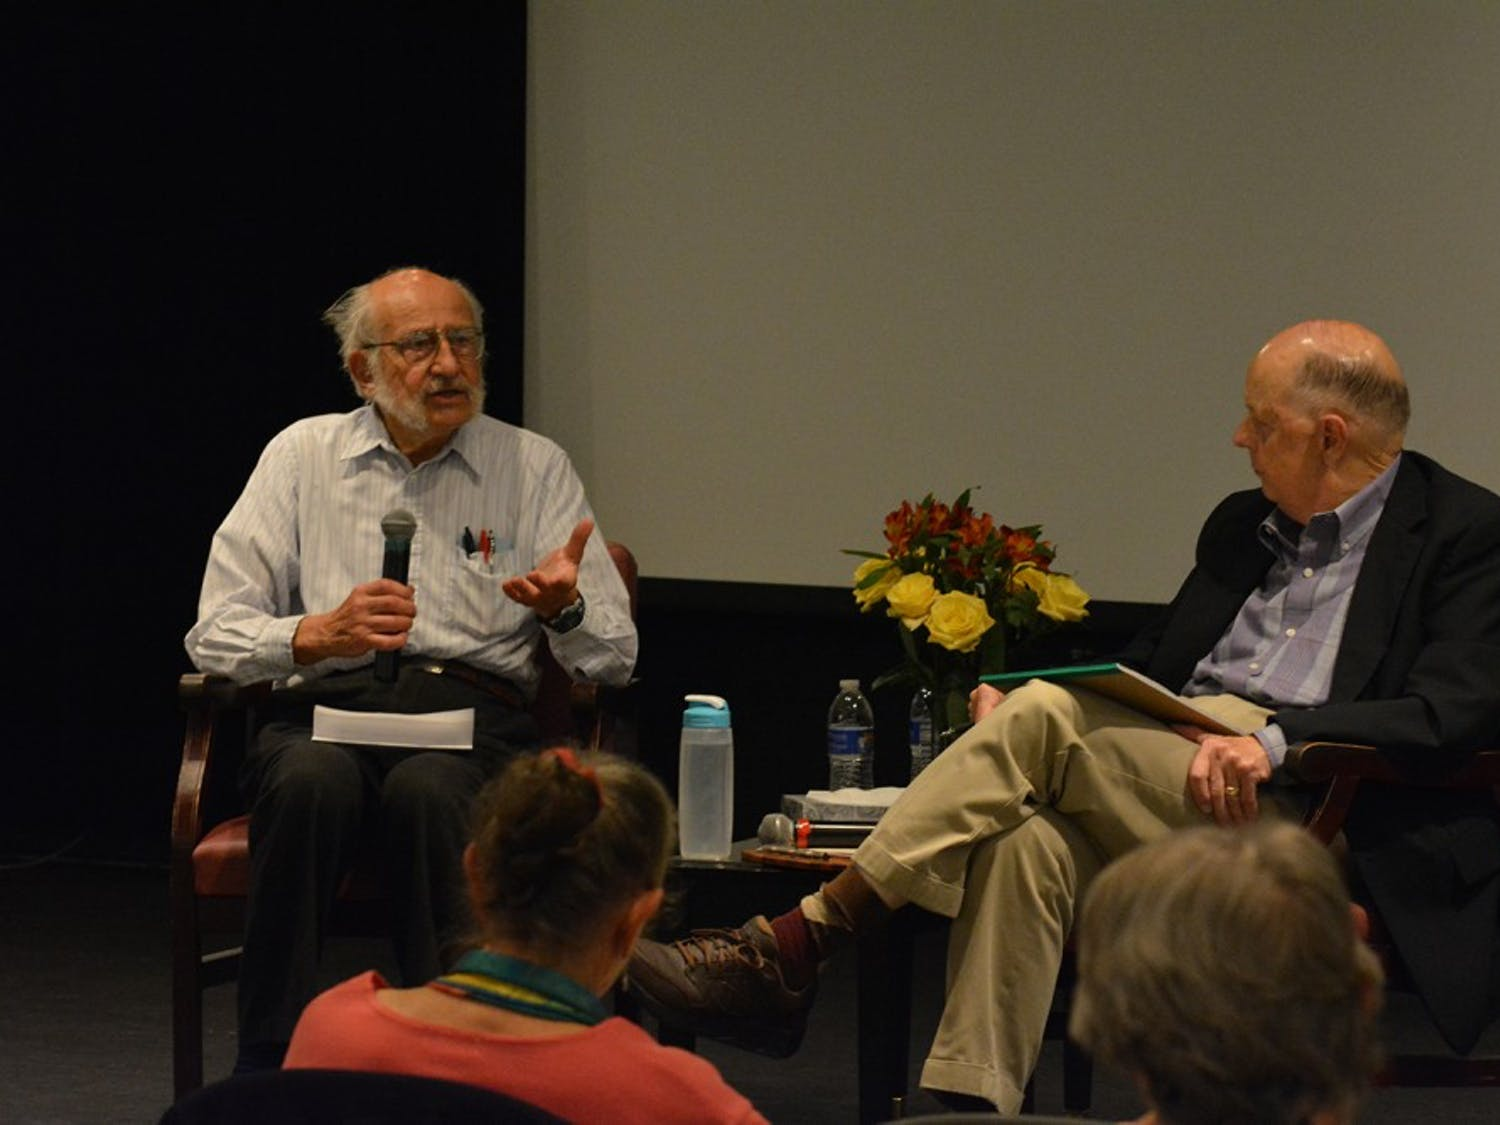 Tom Wolf (left) talks to Bill Crittenden about having conversations about death and dying at the Seymour Center on Thursday night.